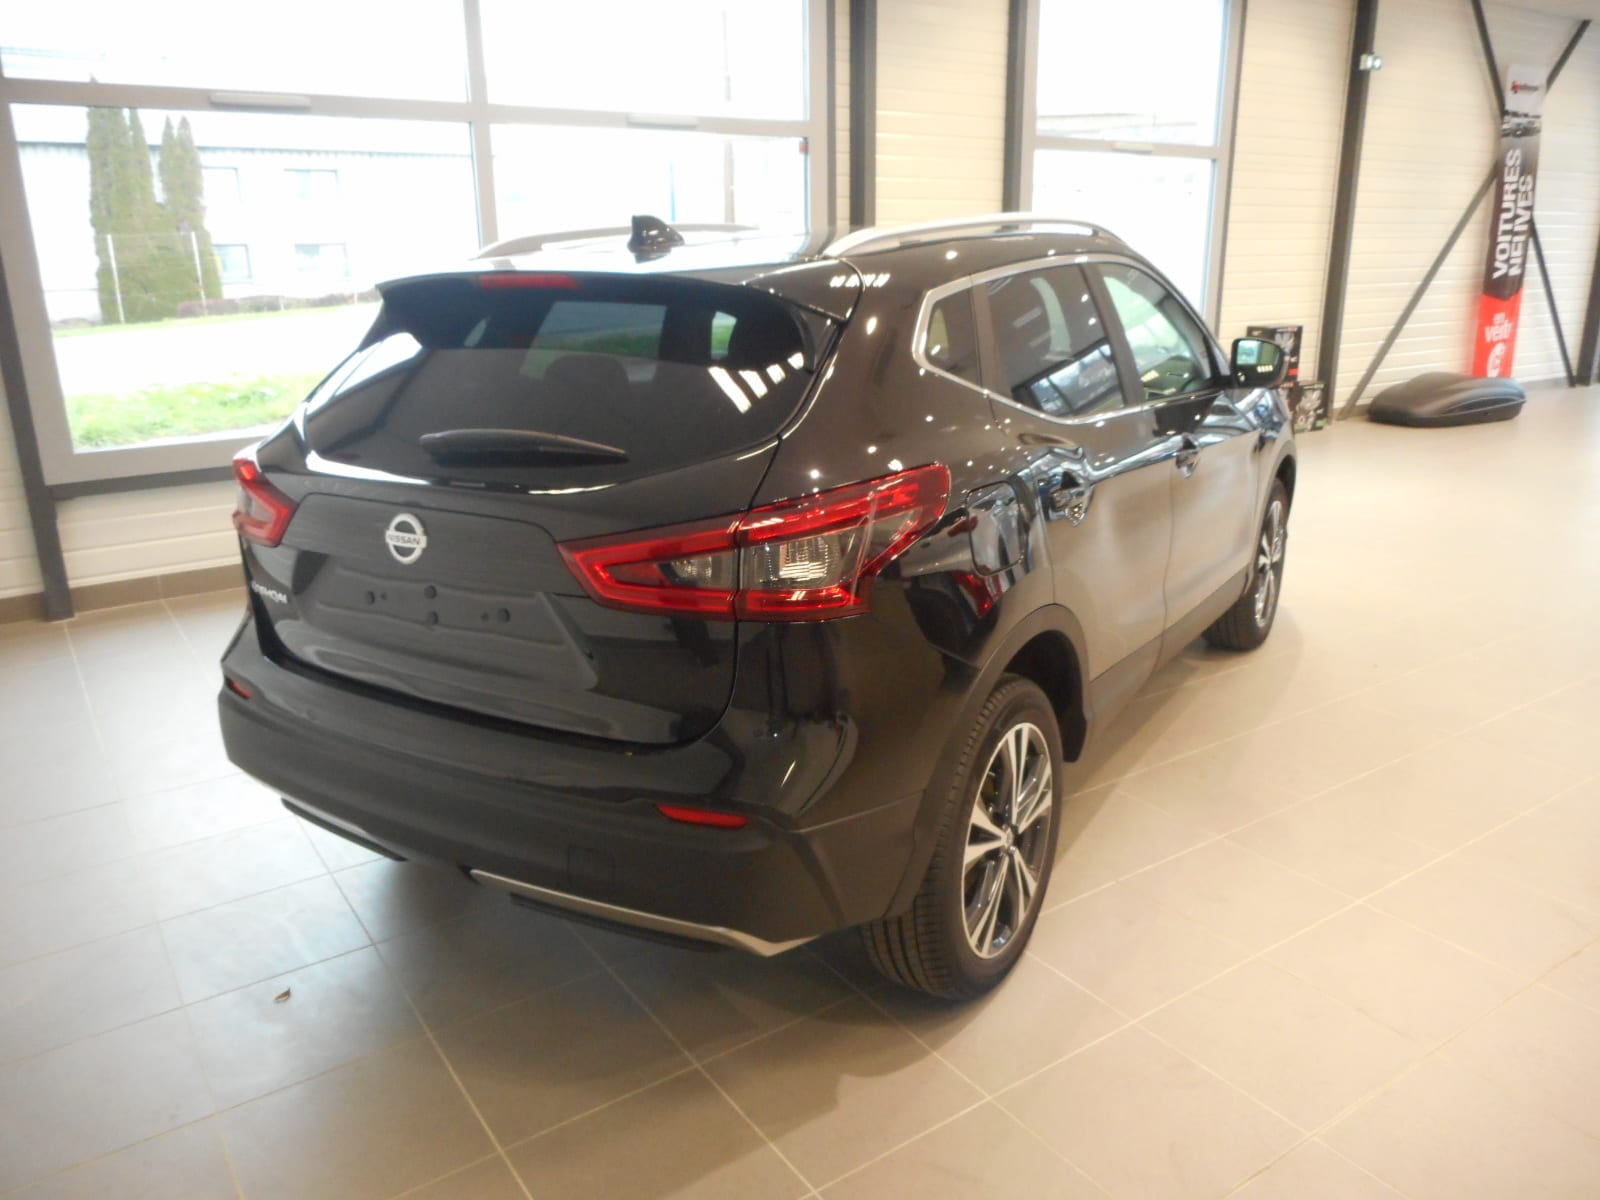 NISSAN QASHQAI 1.5 DCI 110 N CONNECTA PACK DESIGN - Image 2